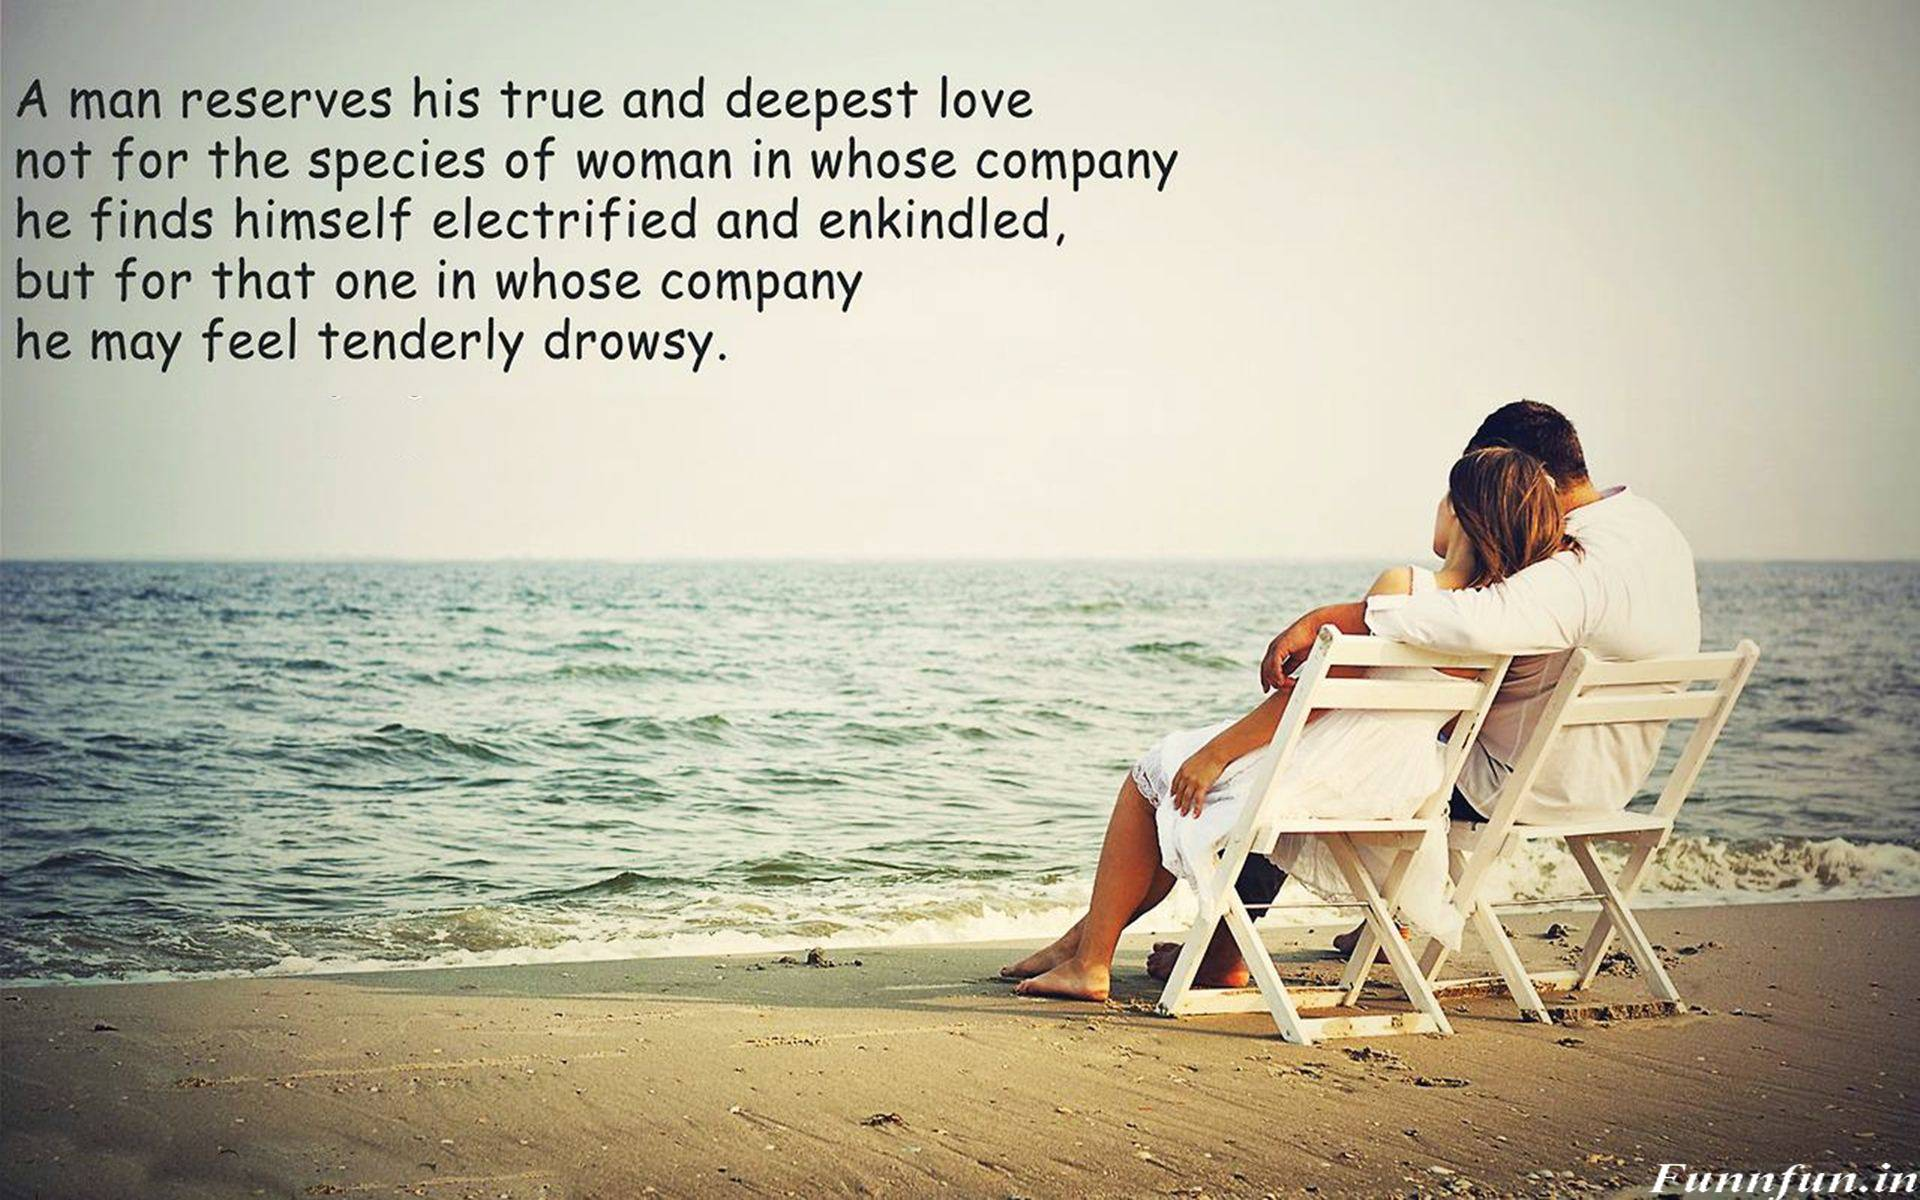 Romantic Love Quotes Full HD Wallpapers Funny Pictures Jokes Cute 1920x1200